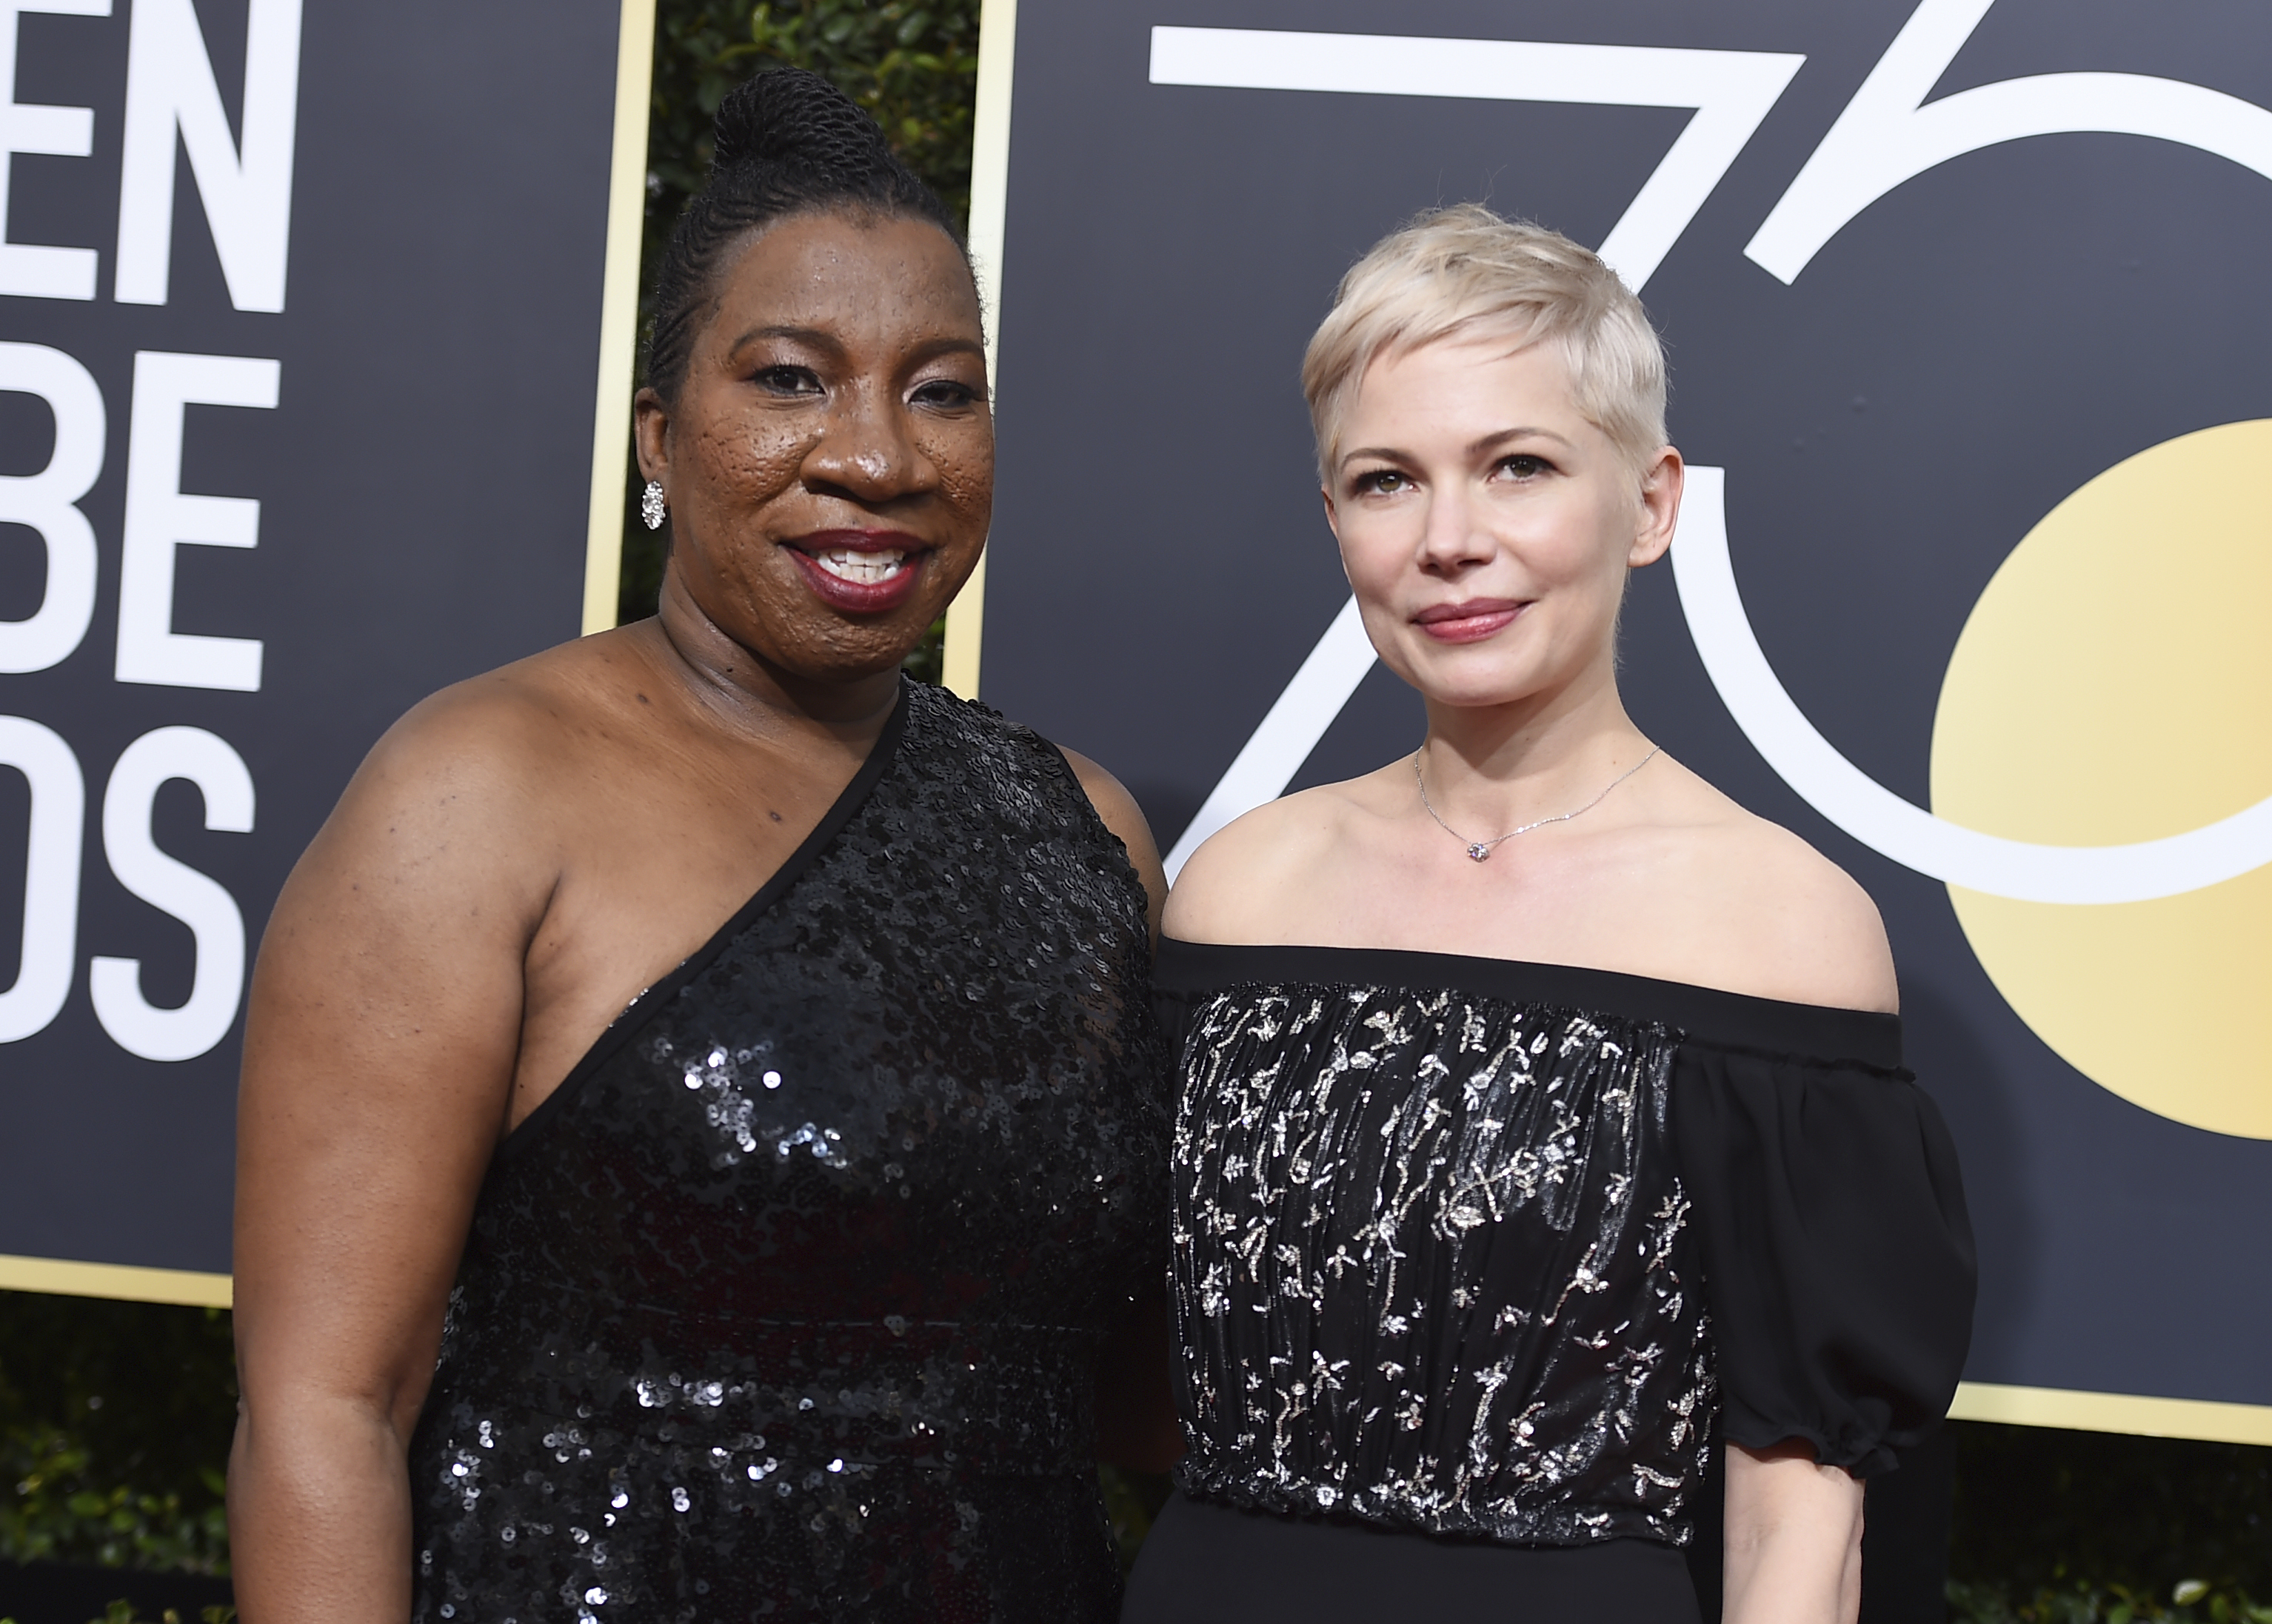 <div class='meta'><div class='origin-logo' data-origin='AP'></div><span class='caption-text' data-credit='Jordan Strauss/Invision/AP'>Tarana Burke, left, and Michelle Williams arrive at the 75th annual Golden Globe Awards at the Beverly Hilton Hotel on Sunday, Jan. 7, 2018, in Beverly Hills, Calif.</span></div>